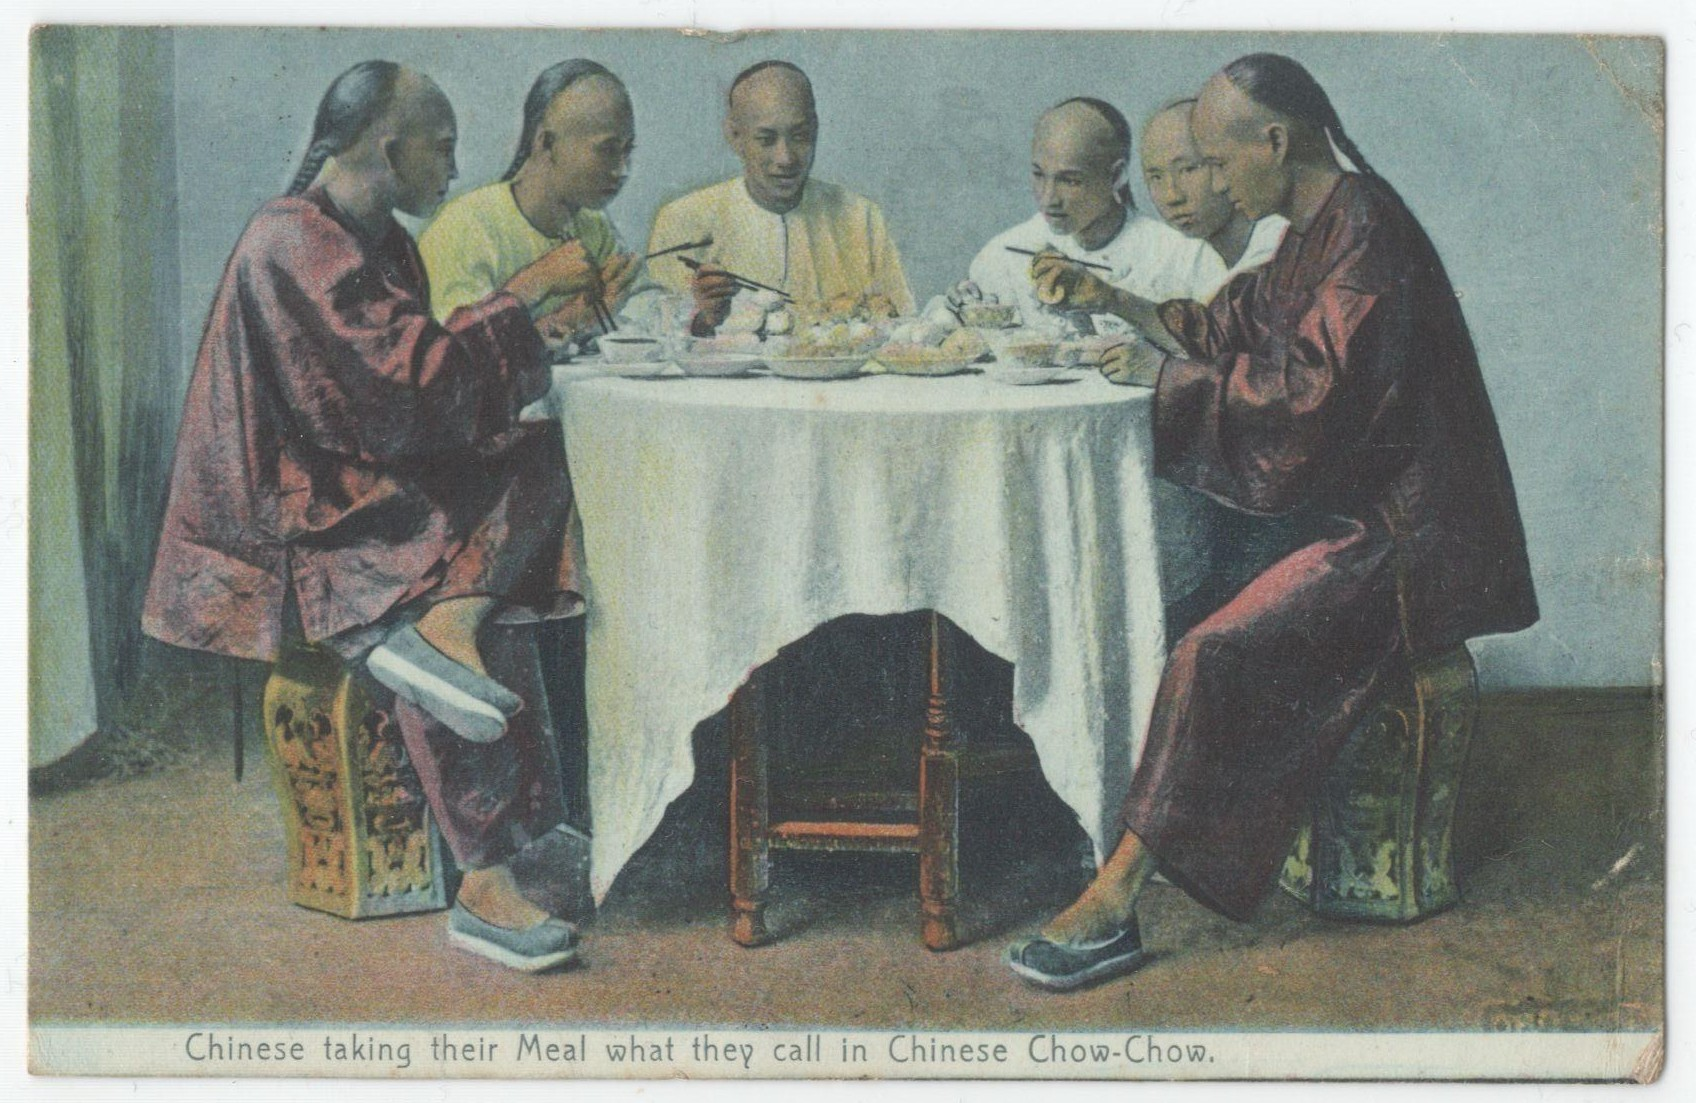 CHINESE TAKING THEIR MEAL CHOW-CHOW - POSTED POSTCARD TEMPORARY P.O. CHOWRASTA 1908